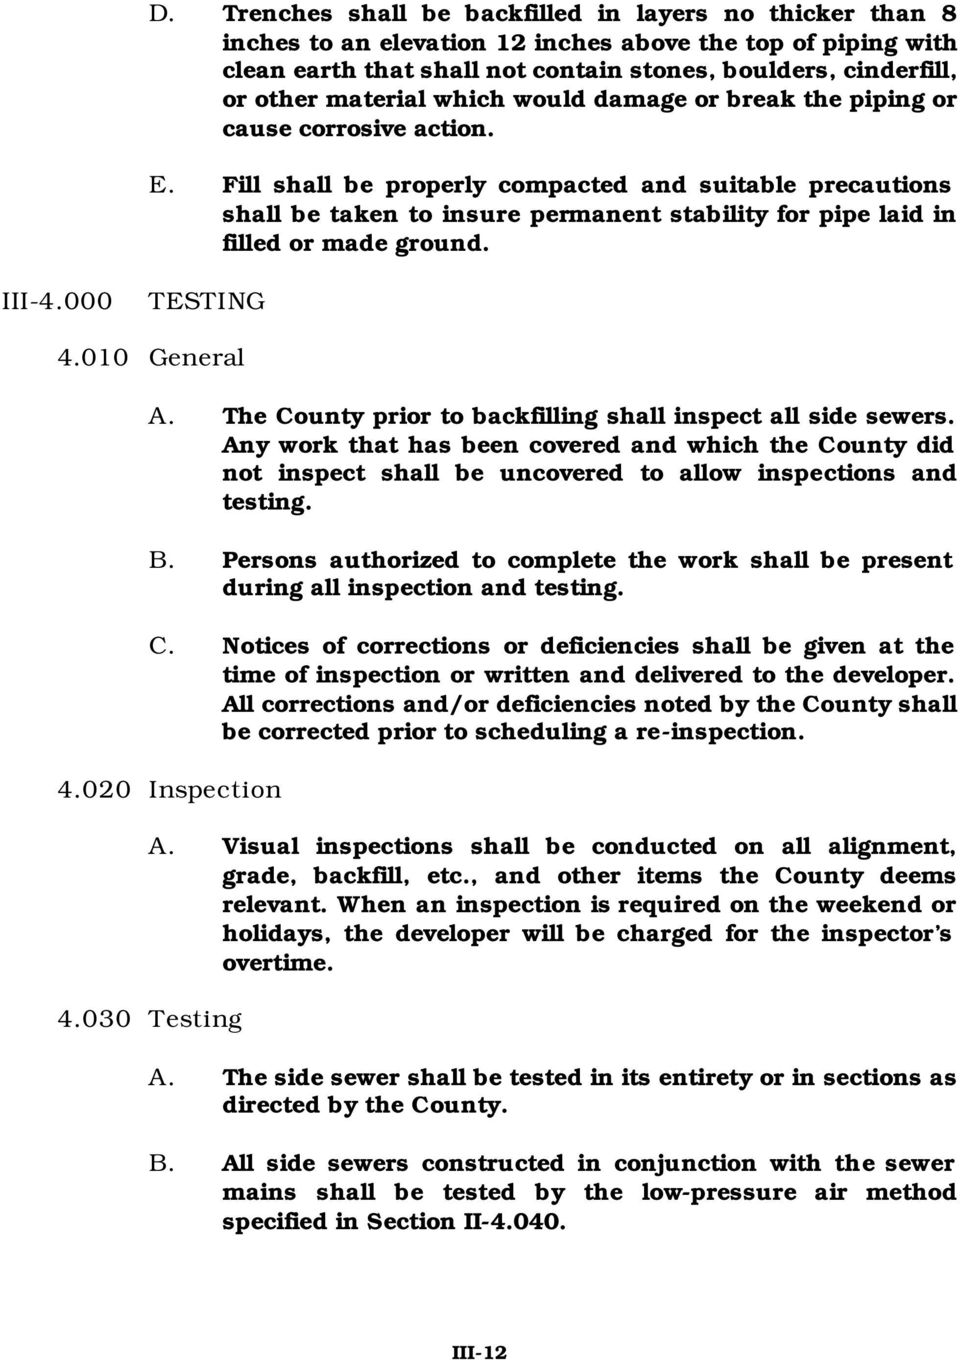 Fill shall be properly compacted and suitable precautions shall be taken to insure permanent stability for pipe laid in filled or made ground. III-4.000 TESTING 4.010 General A.